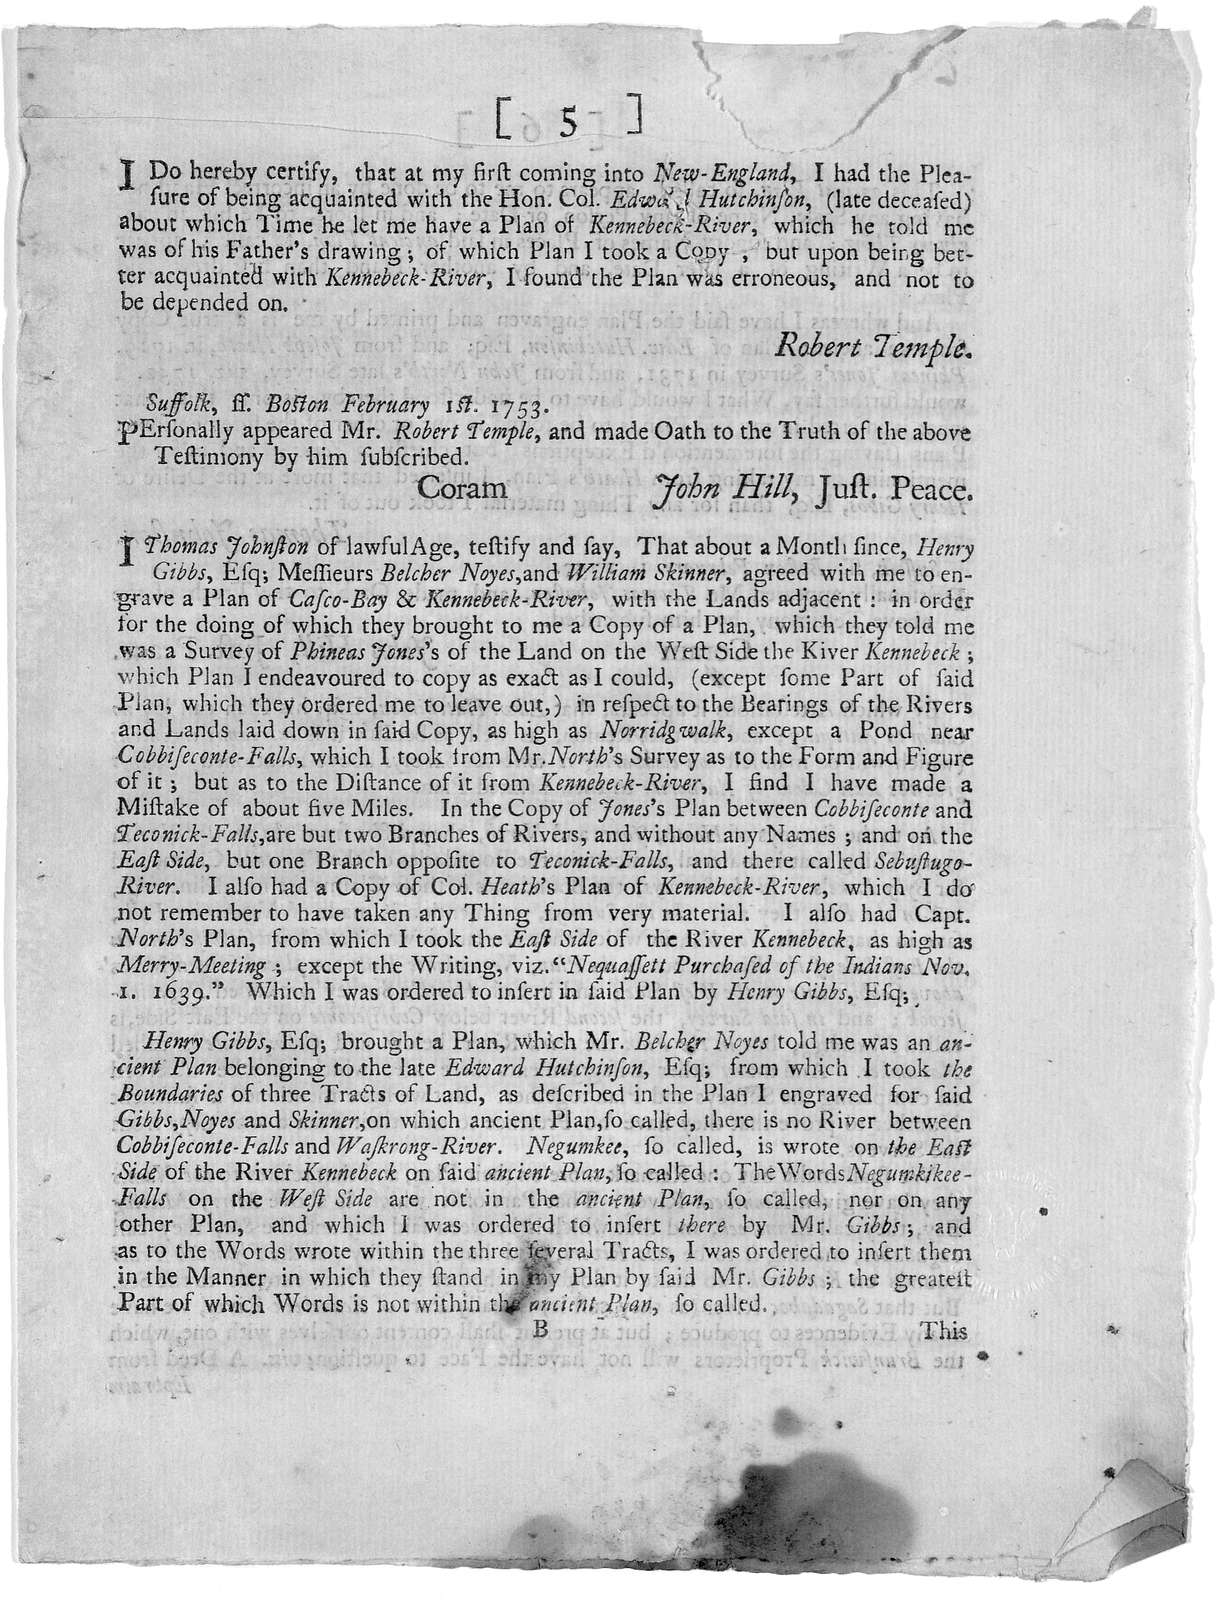 [Remarks on the plan and extracts of deeds lately published by the Proprietors of the Township of Brunswick (as they term themselves) agreable to their vote of January 4th, 1753.] [Boston 1753].